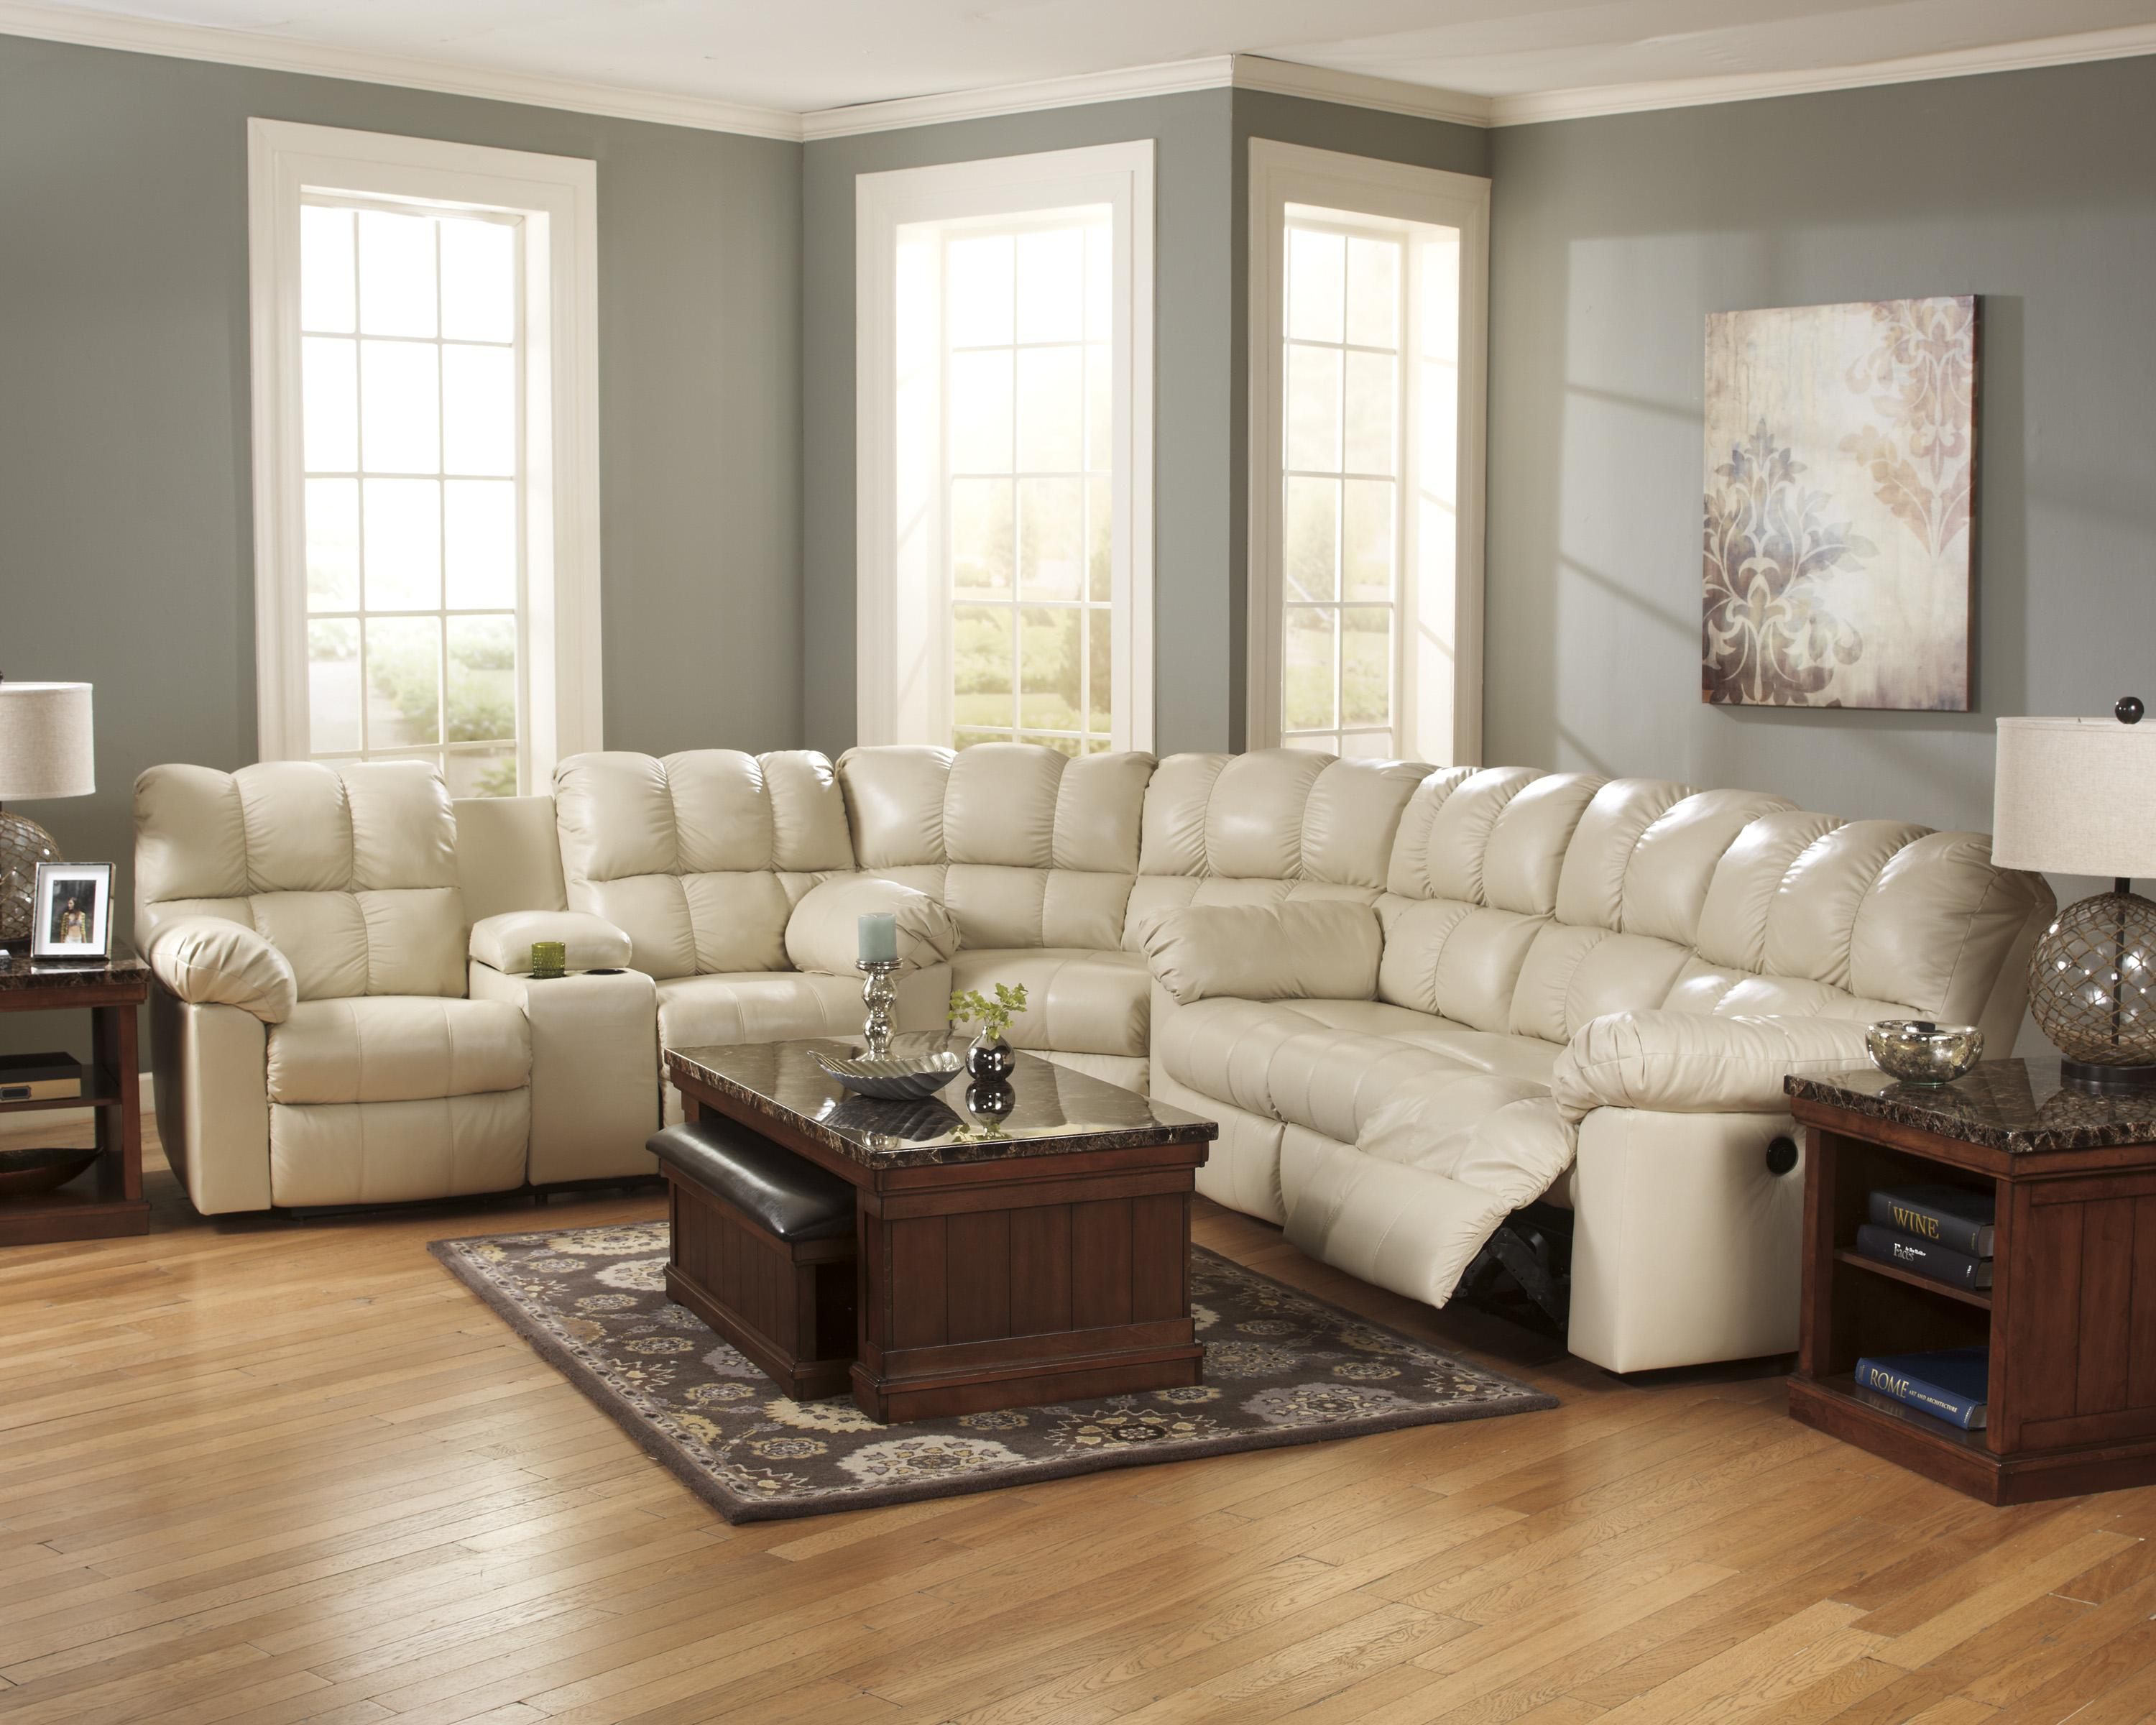 Signature Design by Ashley Kennard Cream Reclining Sectional